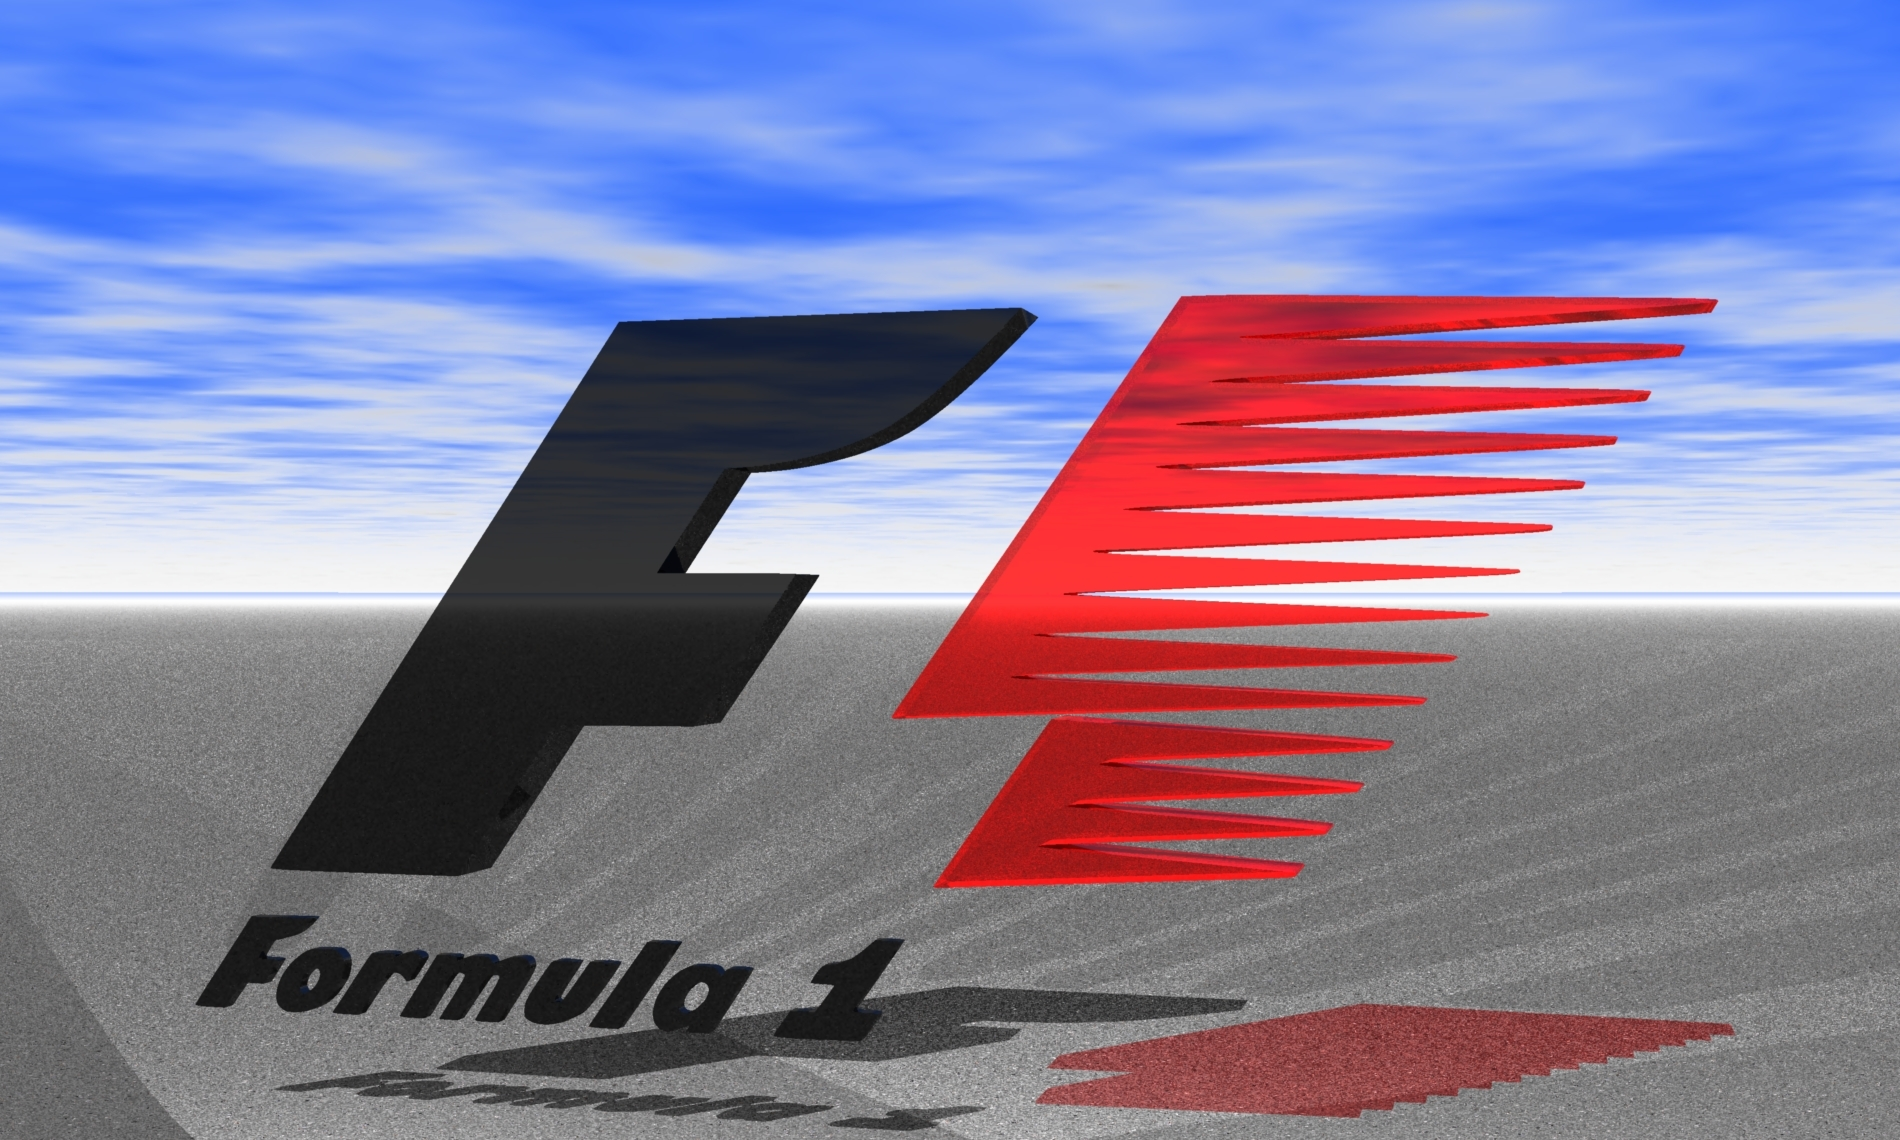 New Formula 1 Wallpaper HD ImageBankbiz 1900x1140